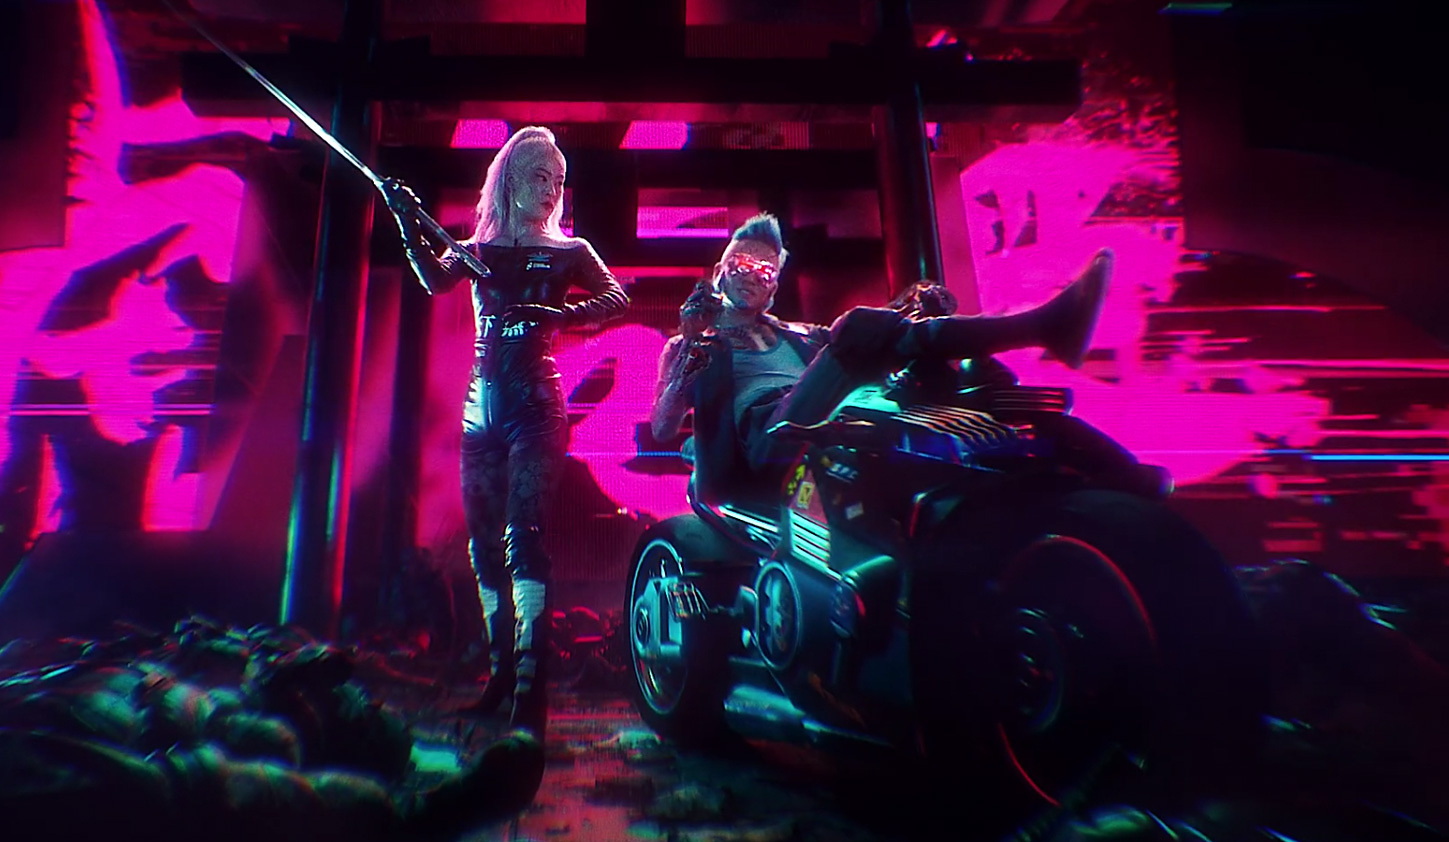 Quelle: YouTube - Run the Jewels - Die Detailverliebtheit im Video feuert den Hype zu Cyberpunk 2077 noch mehr an.